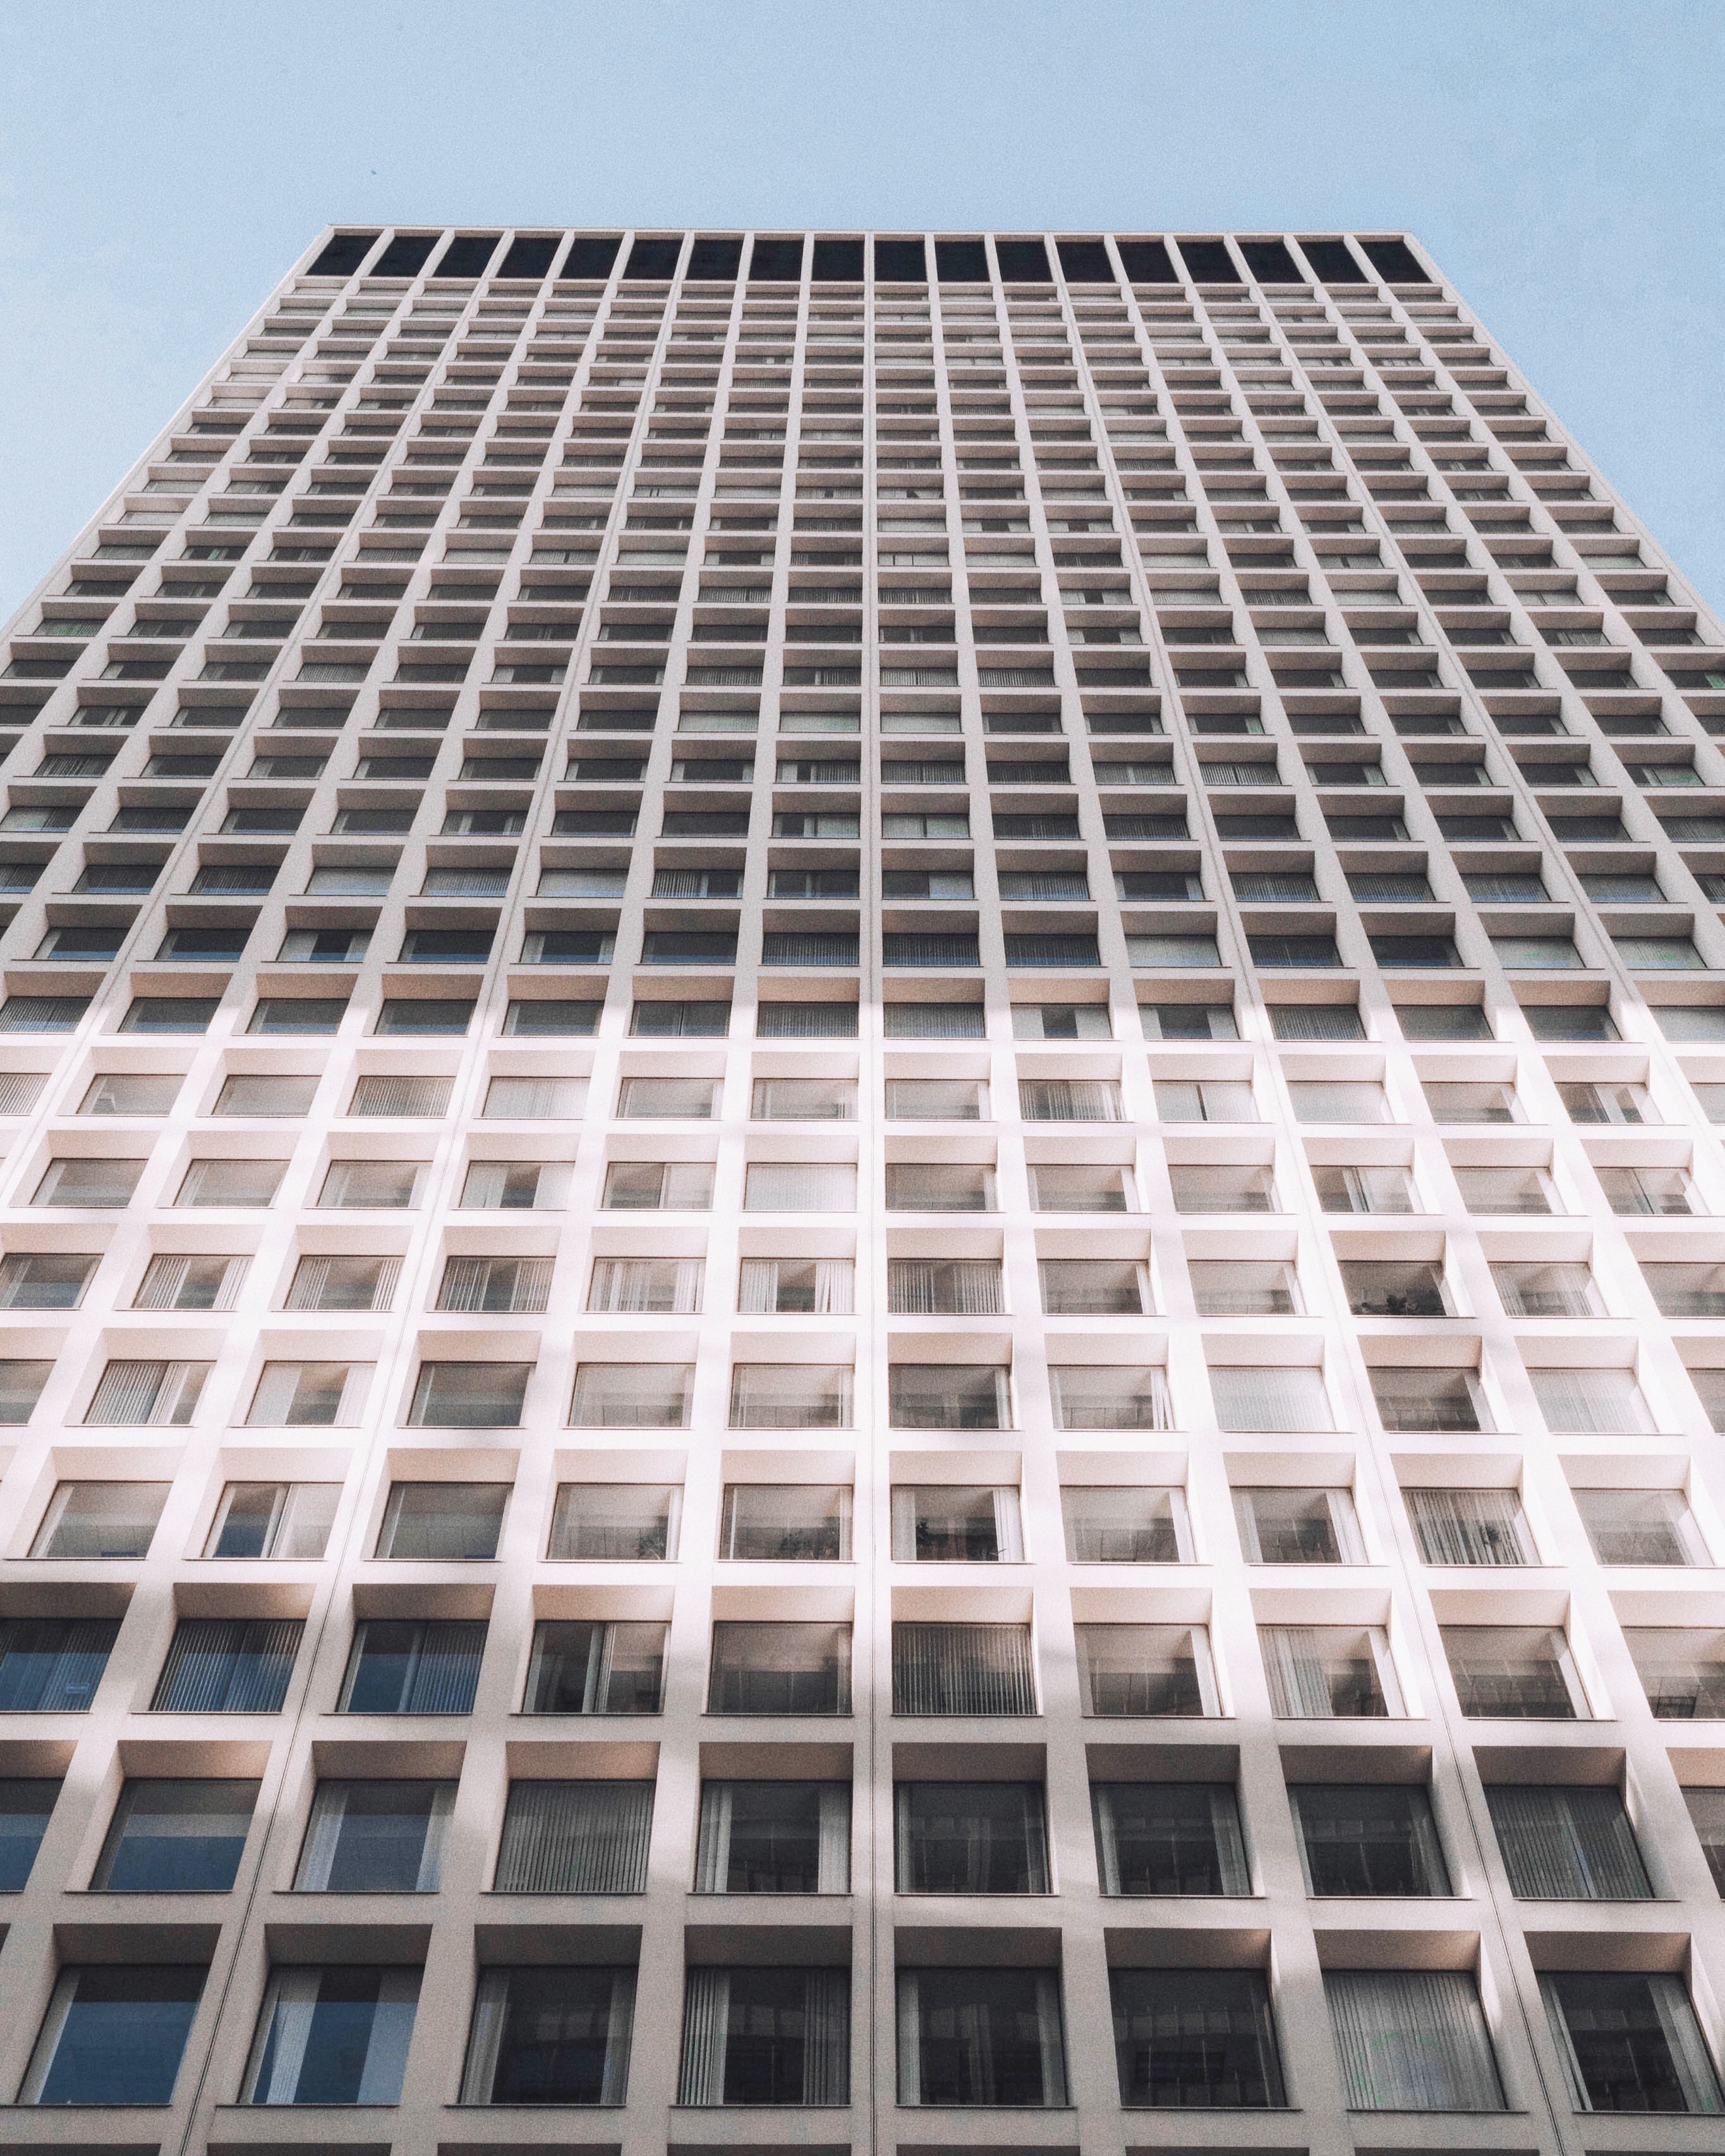 minimalist photography of white and gray high-rise building